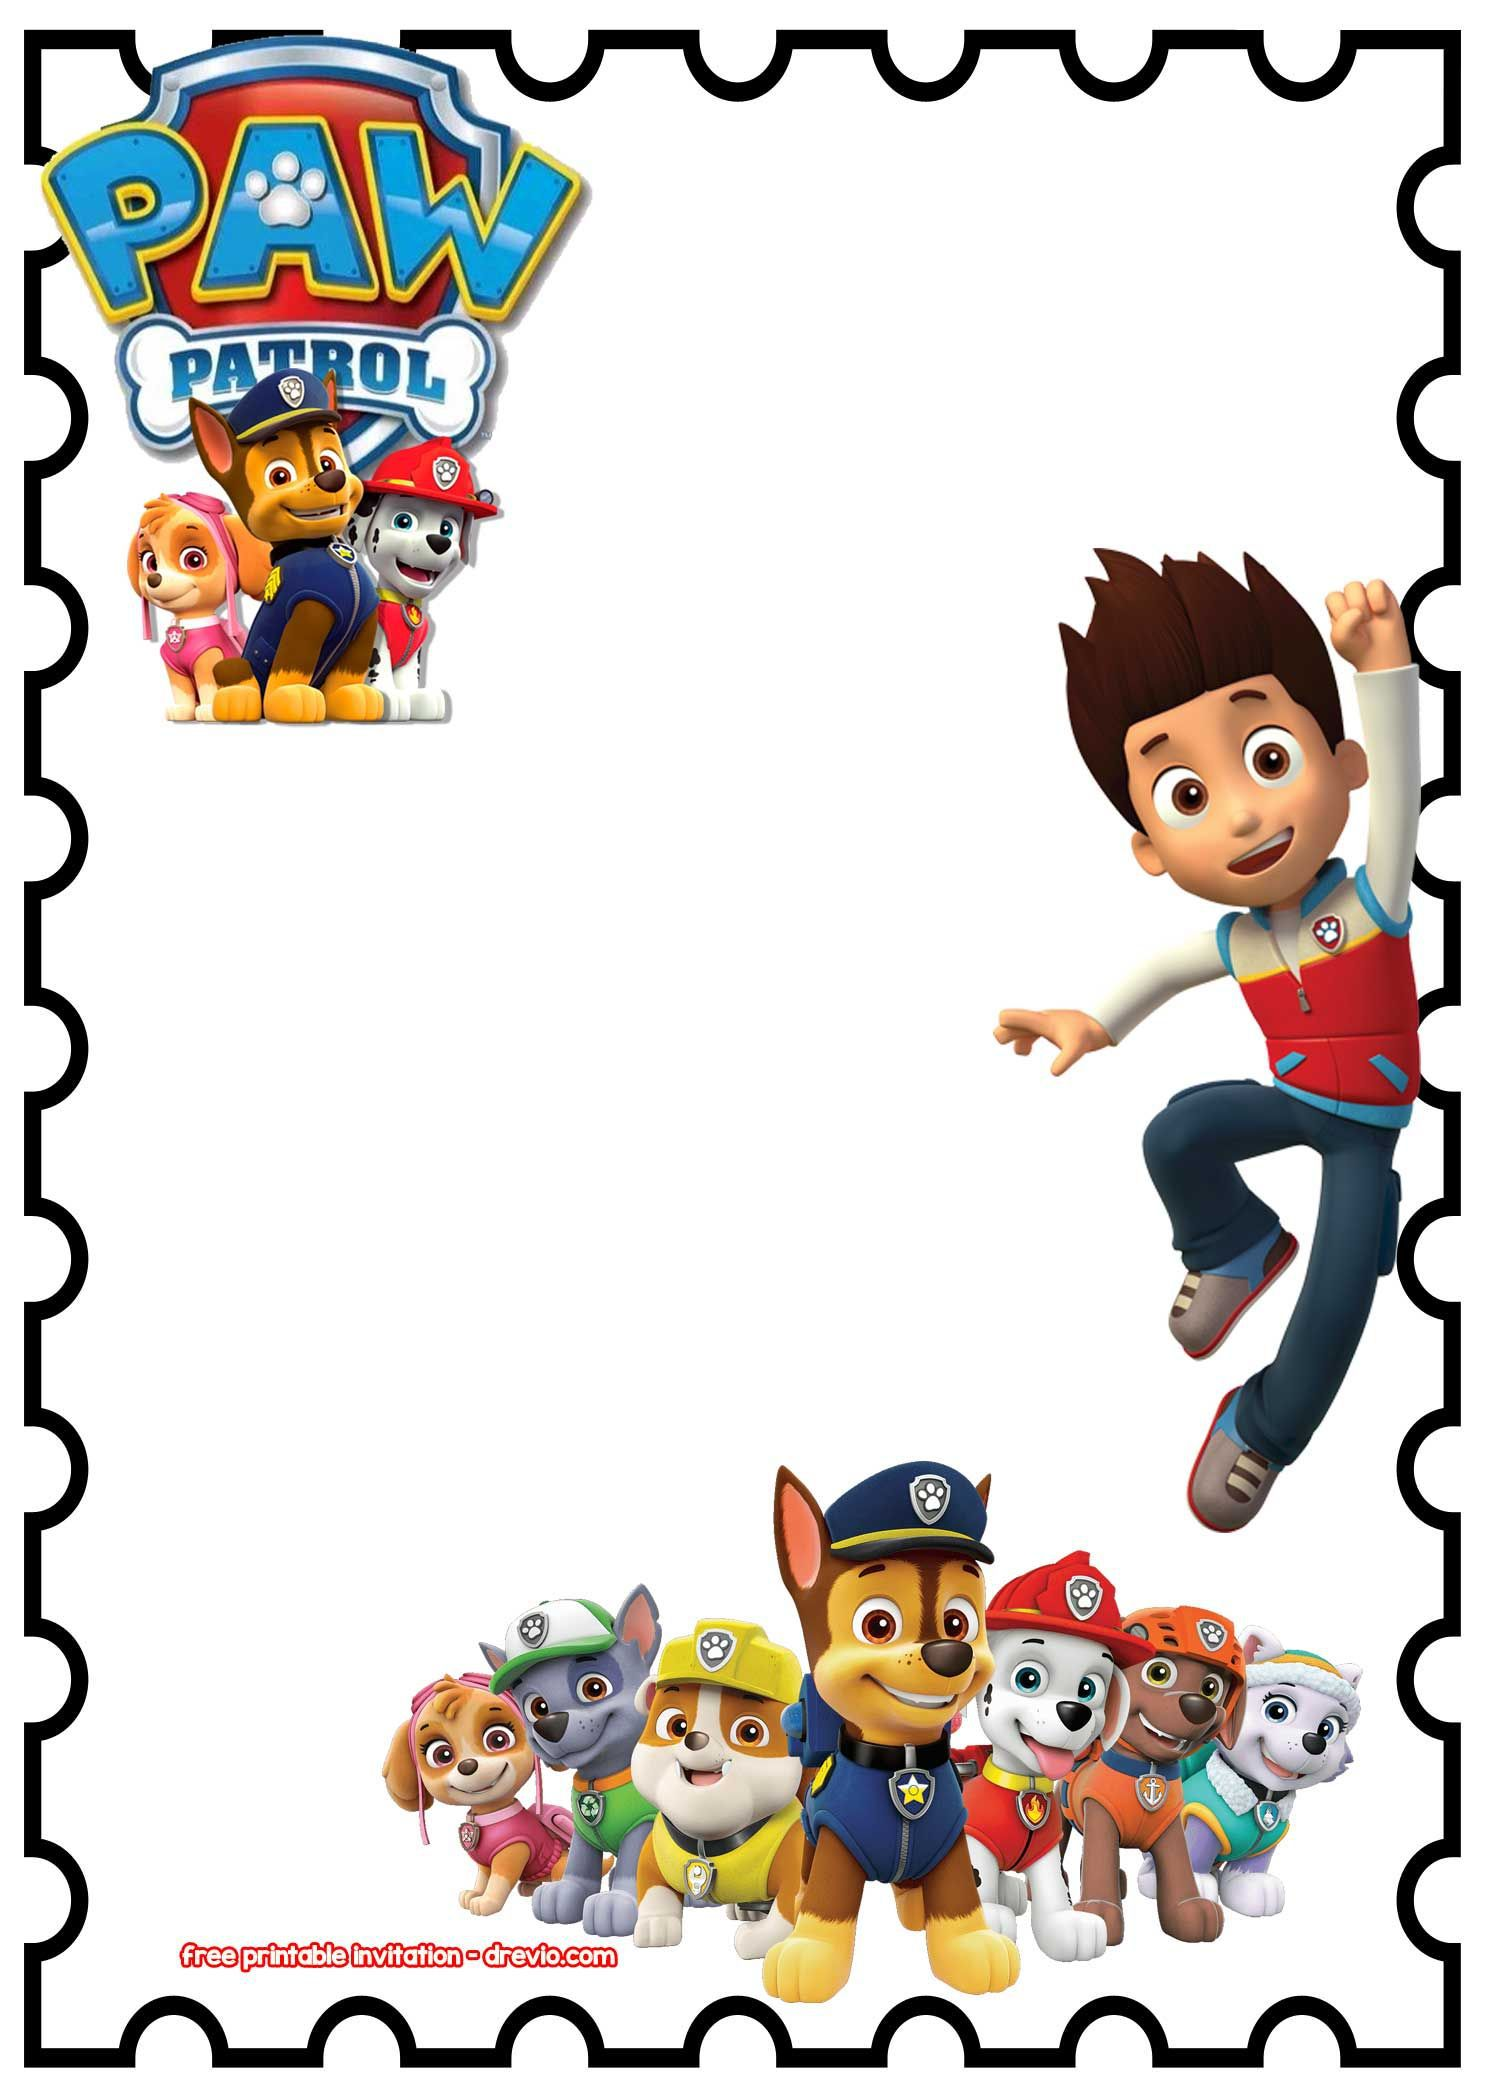 003 Awesome Paw Patrol Birthday Invitation Template Picture  Party Invite Wording Skye FreeFull